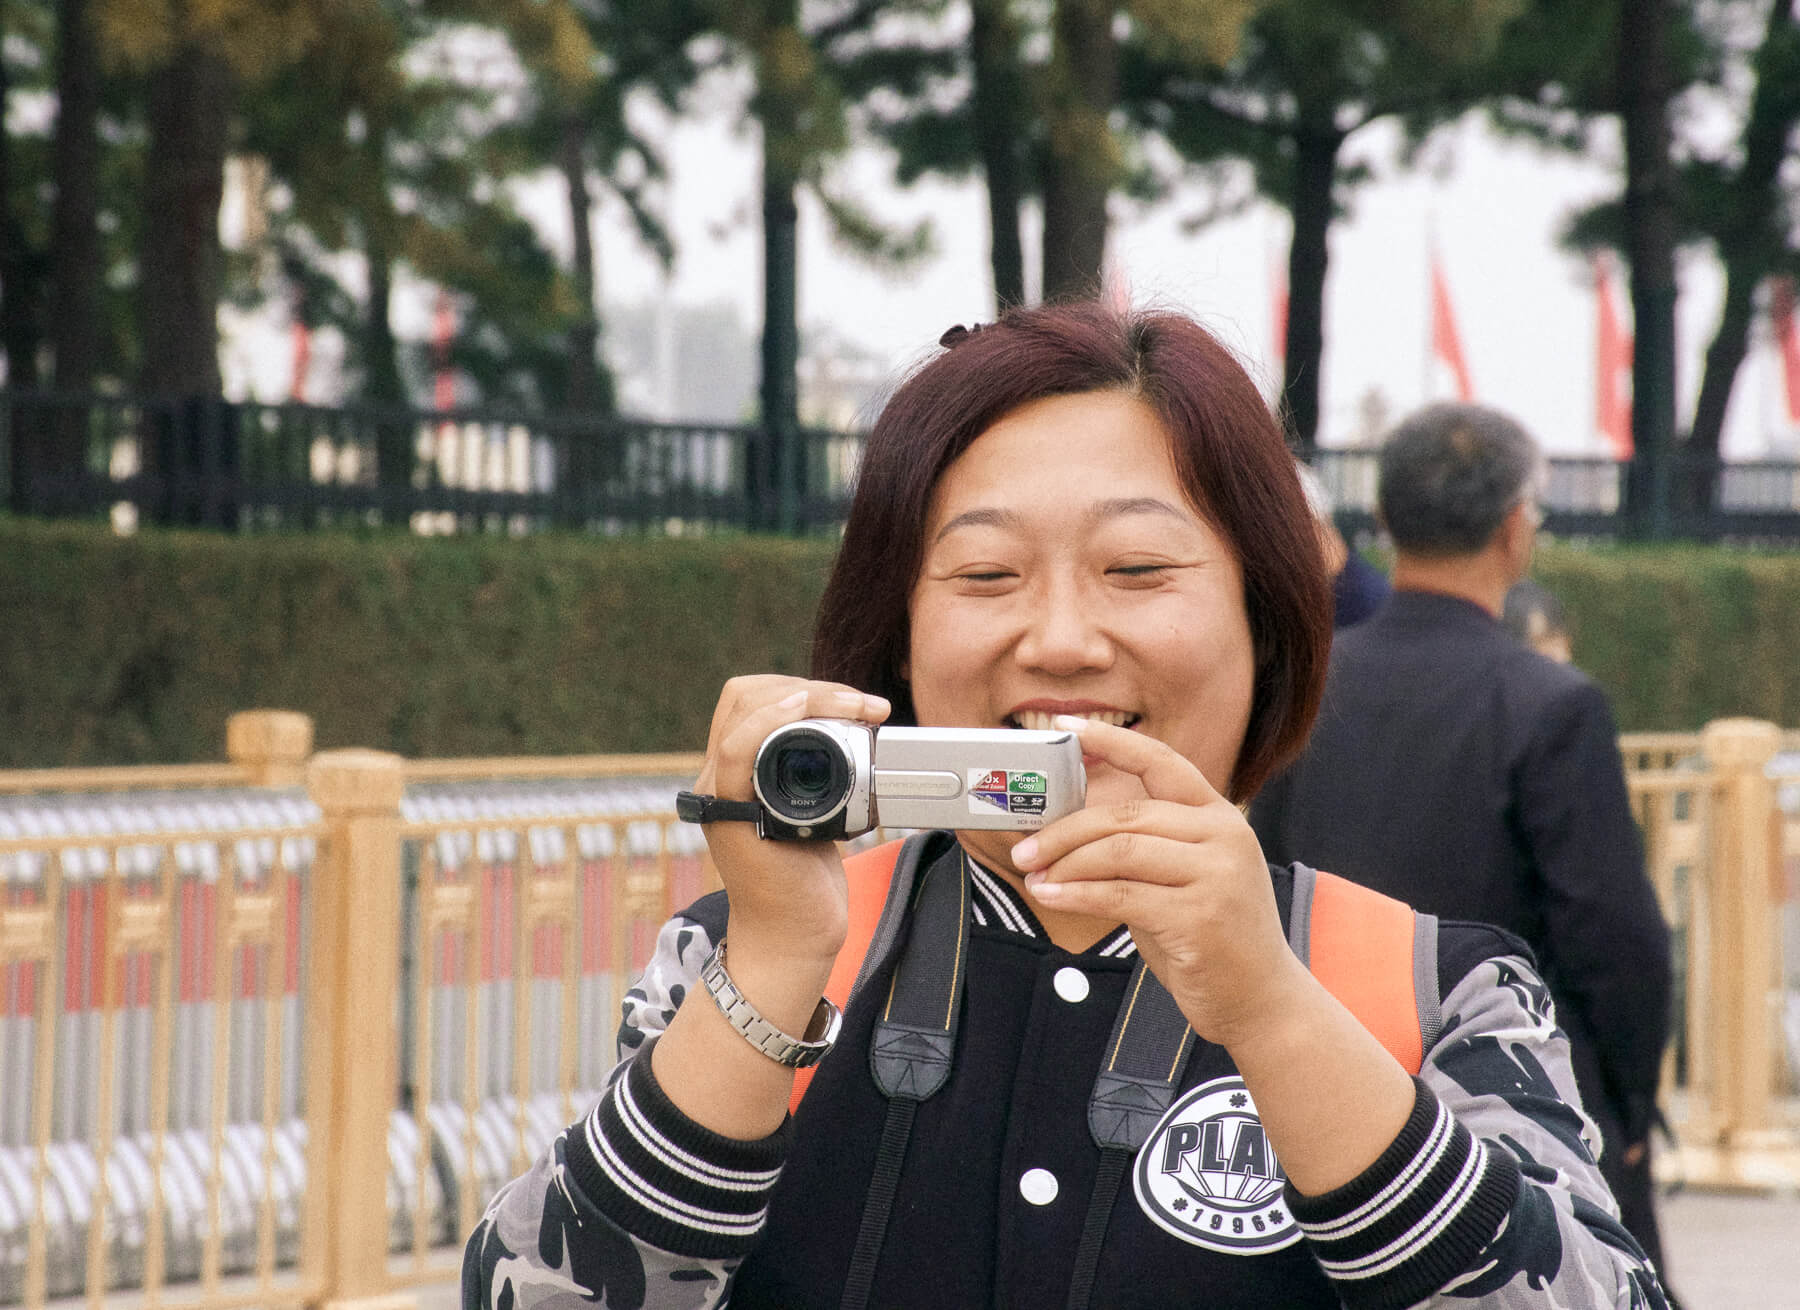 An image of a Chinese lady taking a picture of me with a hand held video-cam